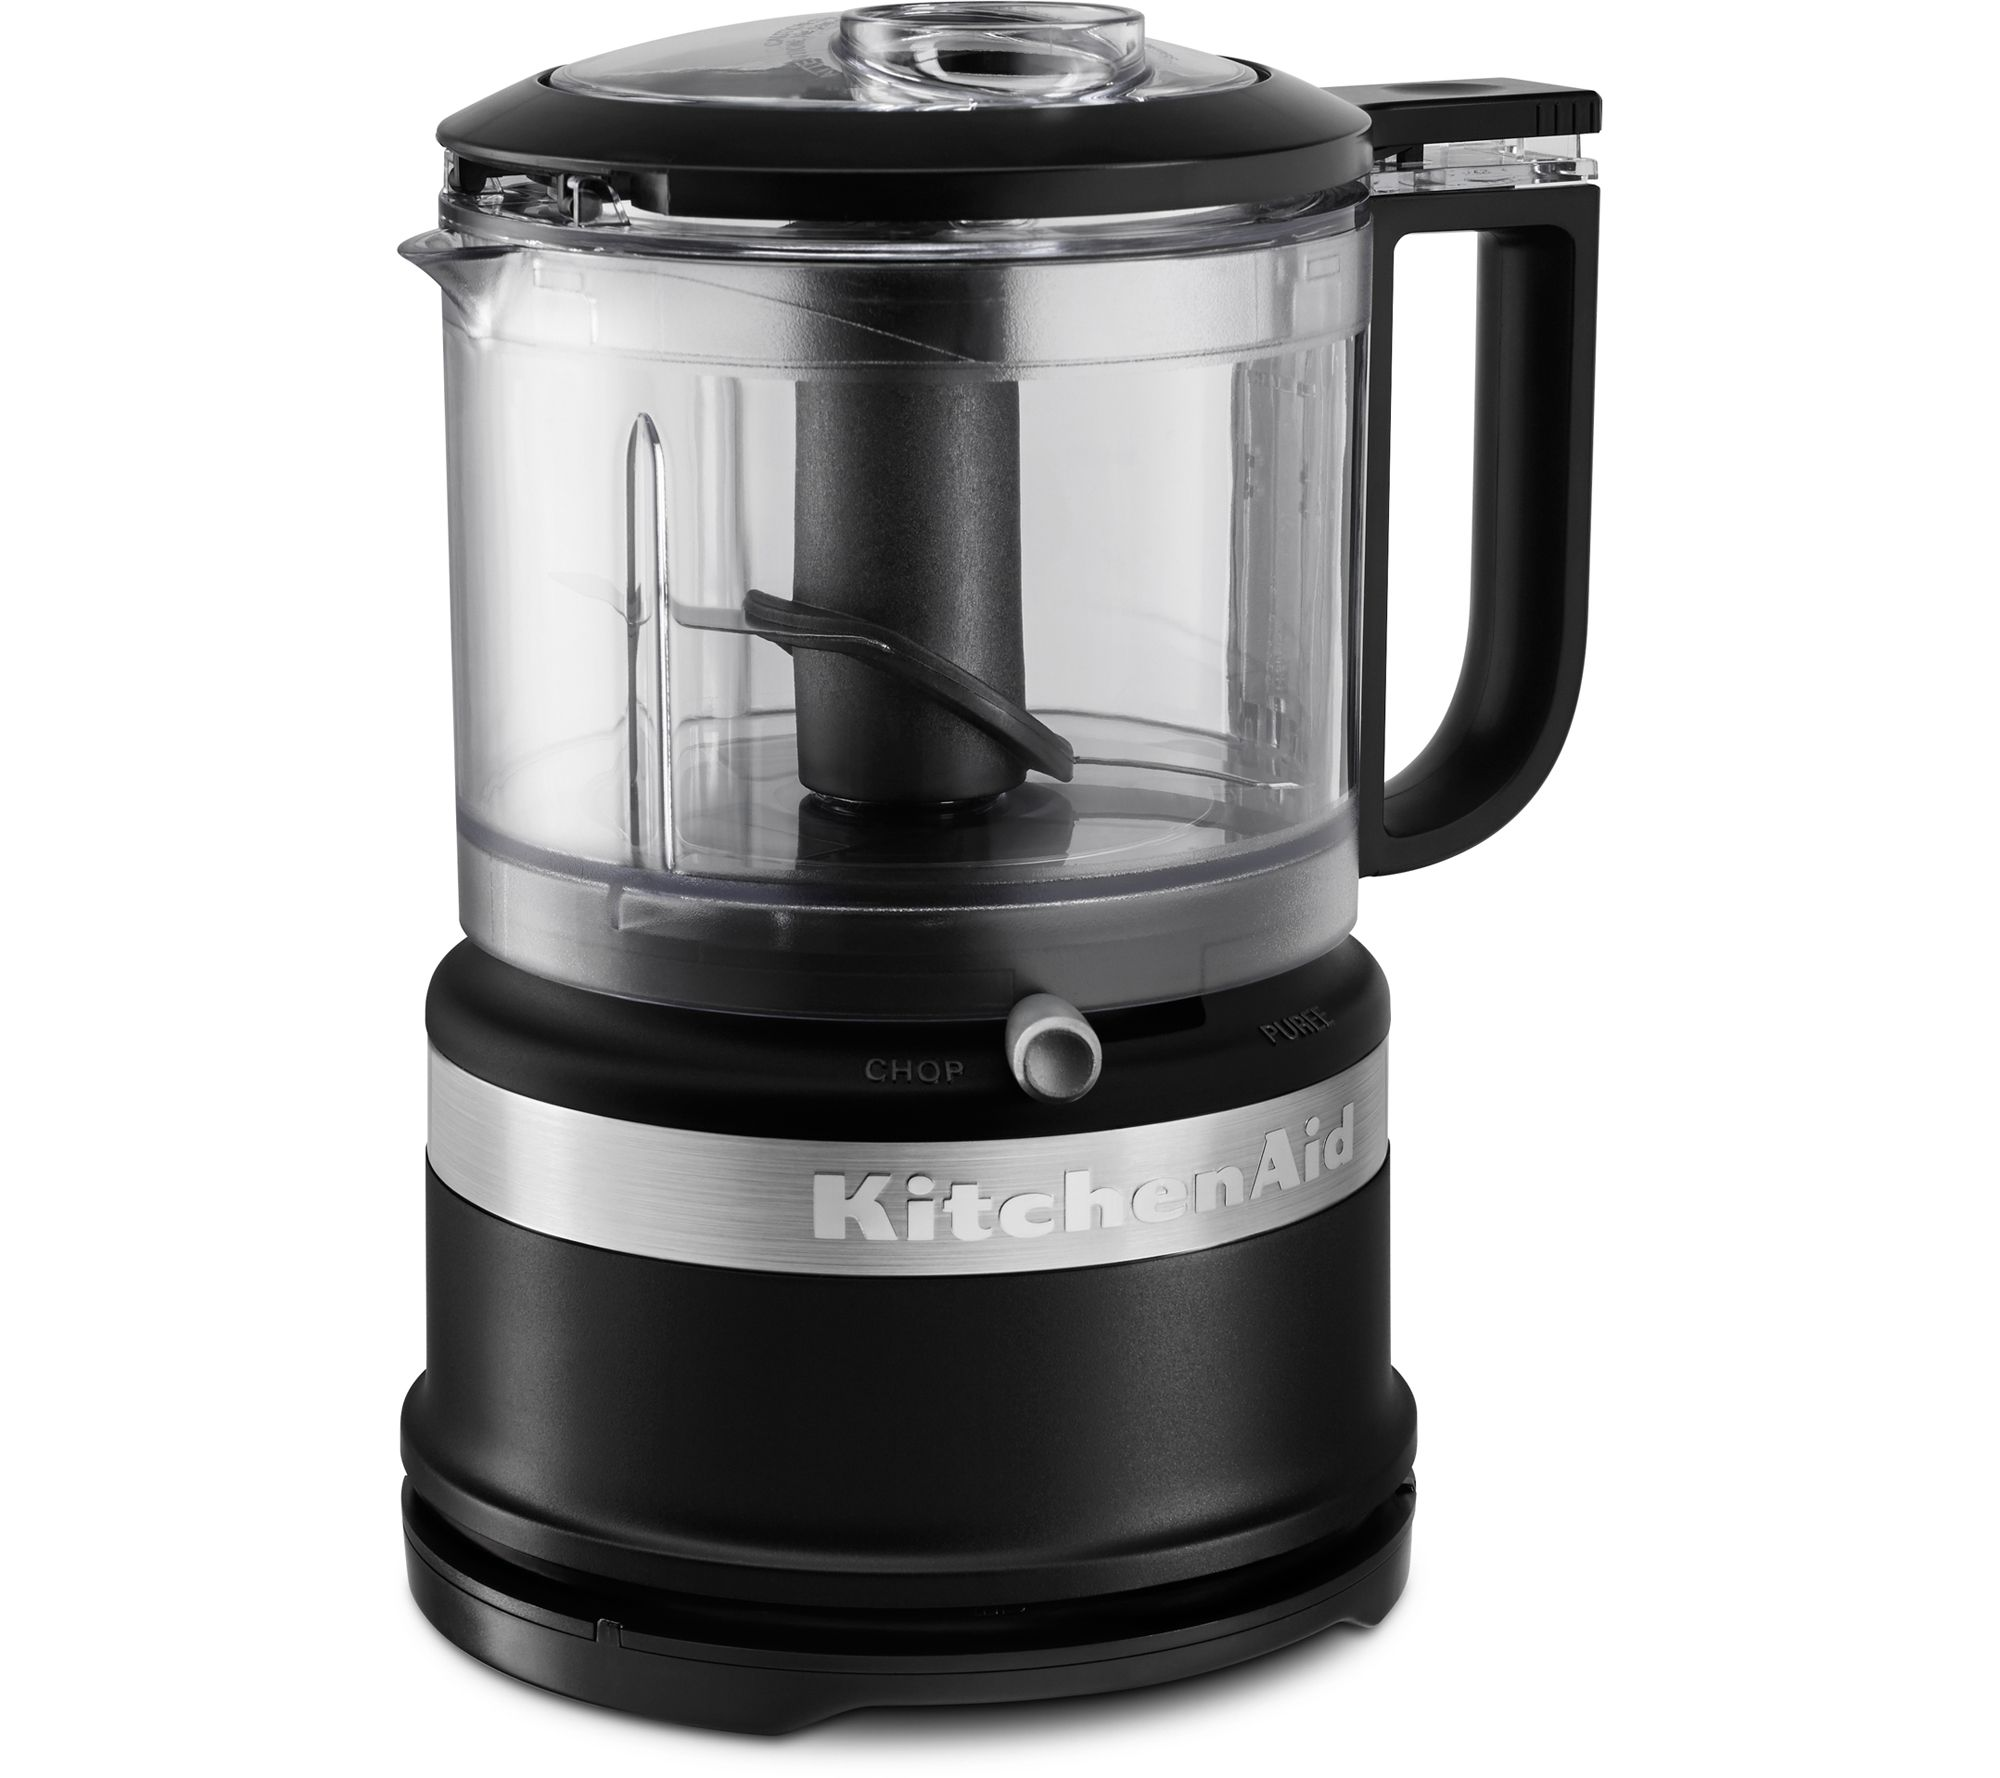 KitchenAid 3.5 Cup Mini Food Processor   MatteBlack U2014 QVC.com